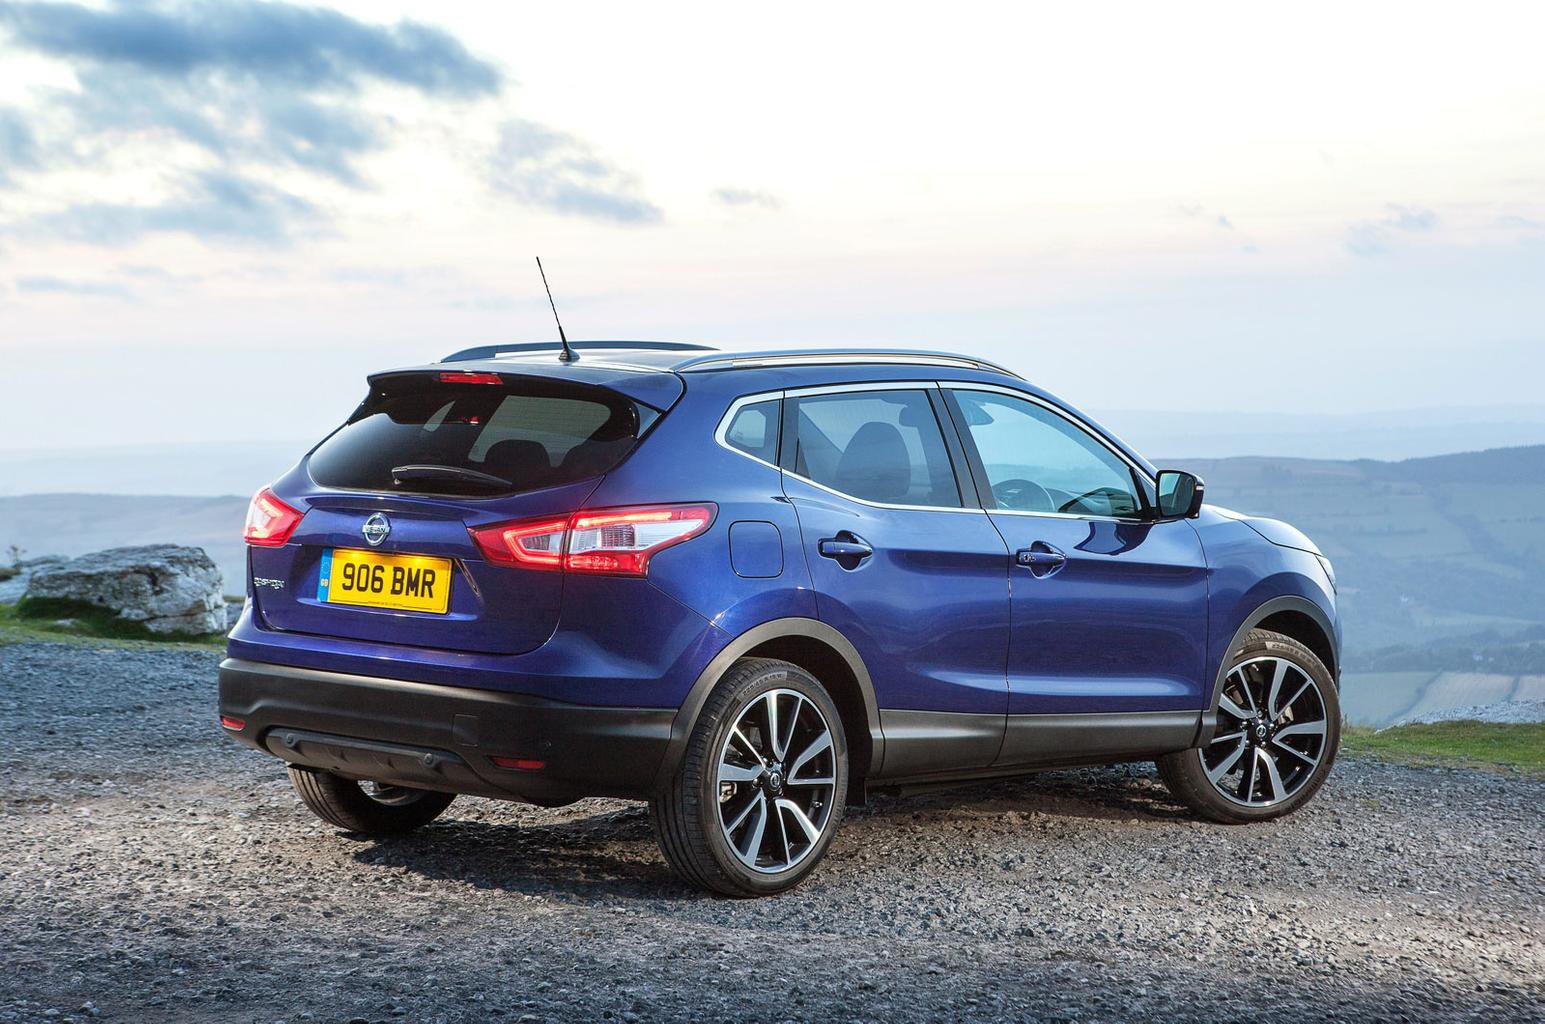 Promoted: Calling all Nissan Qashqai and X-Trail owners!